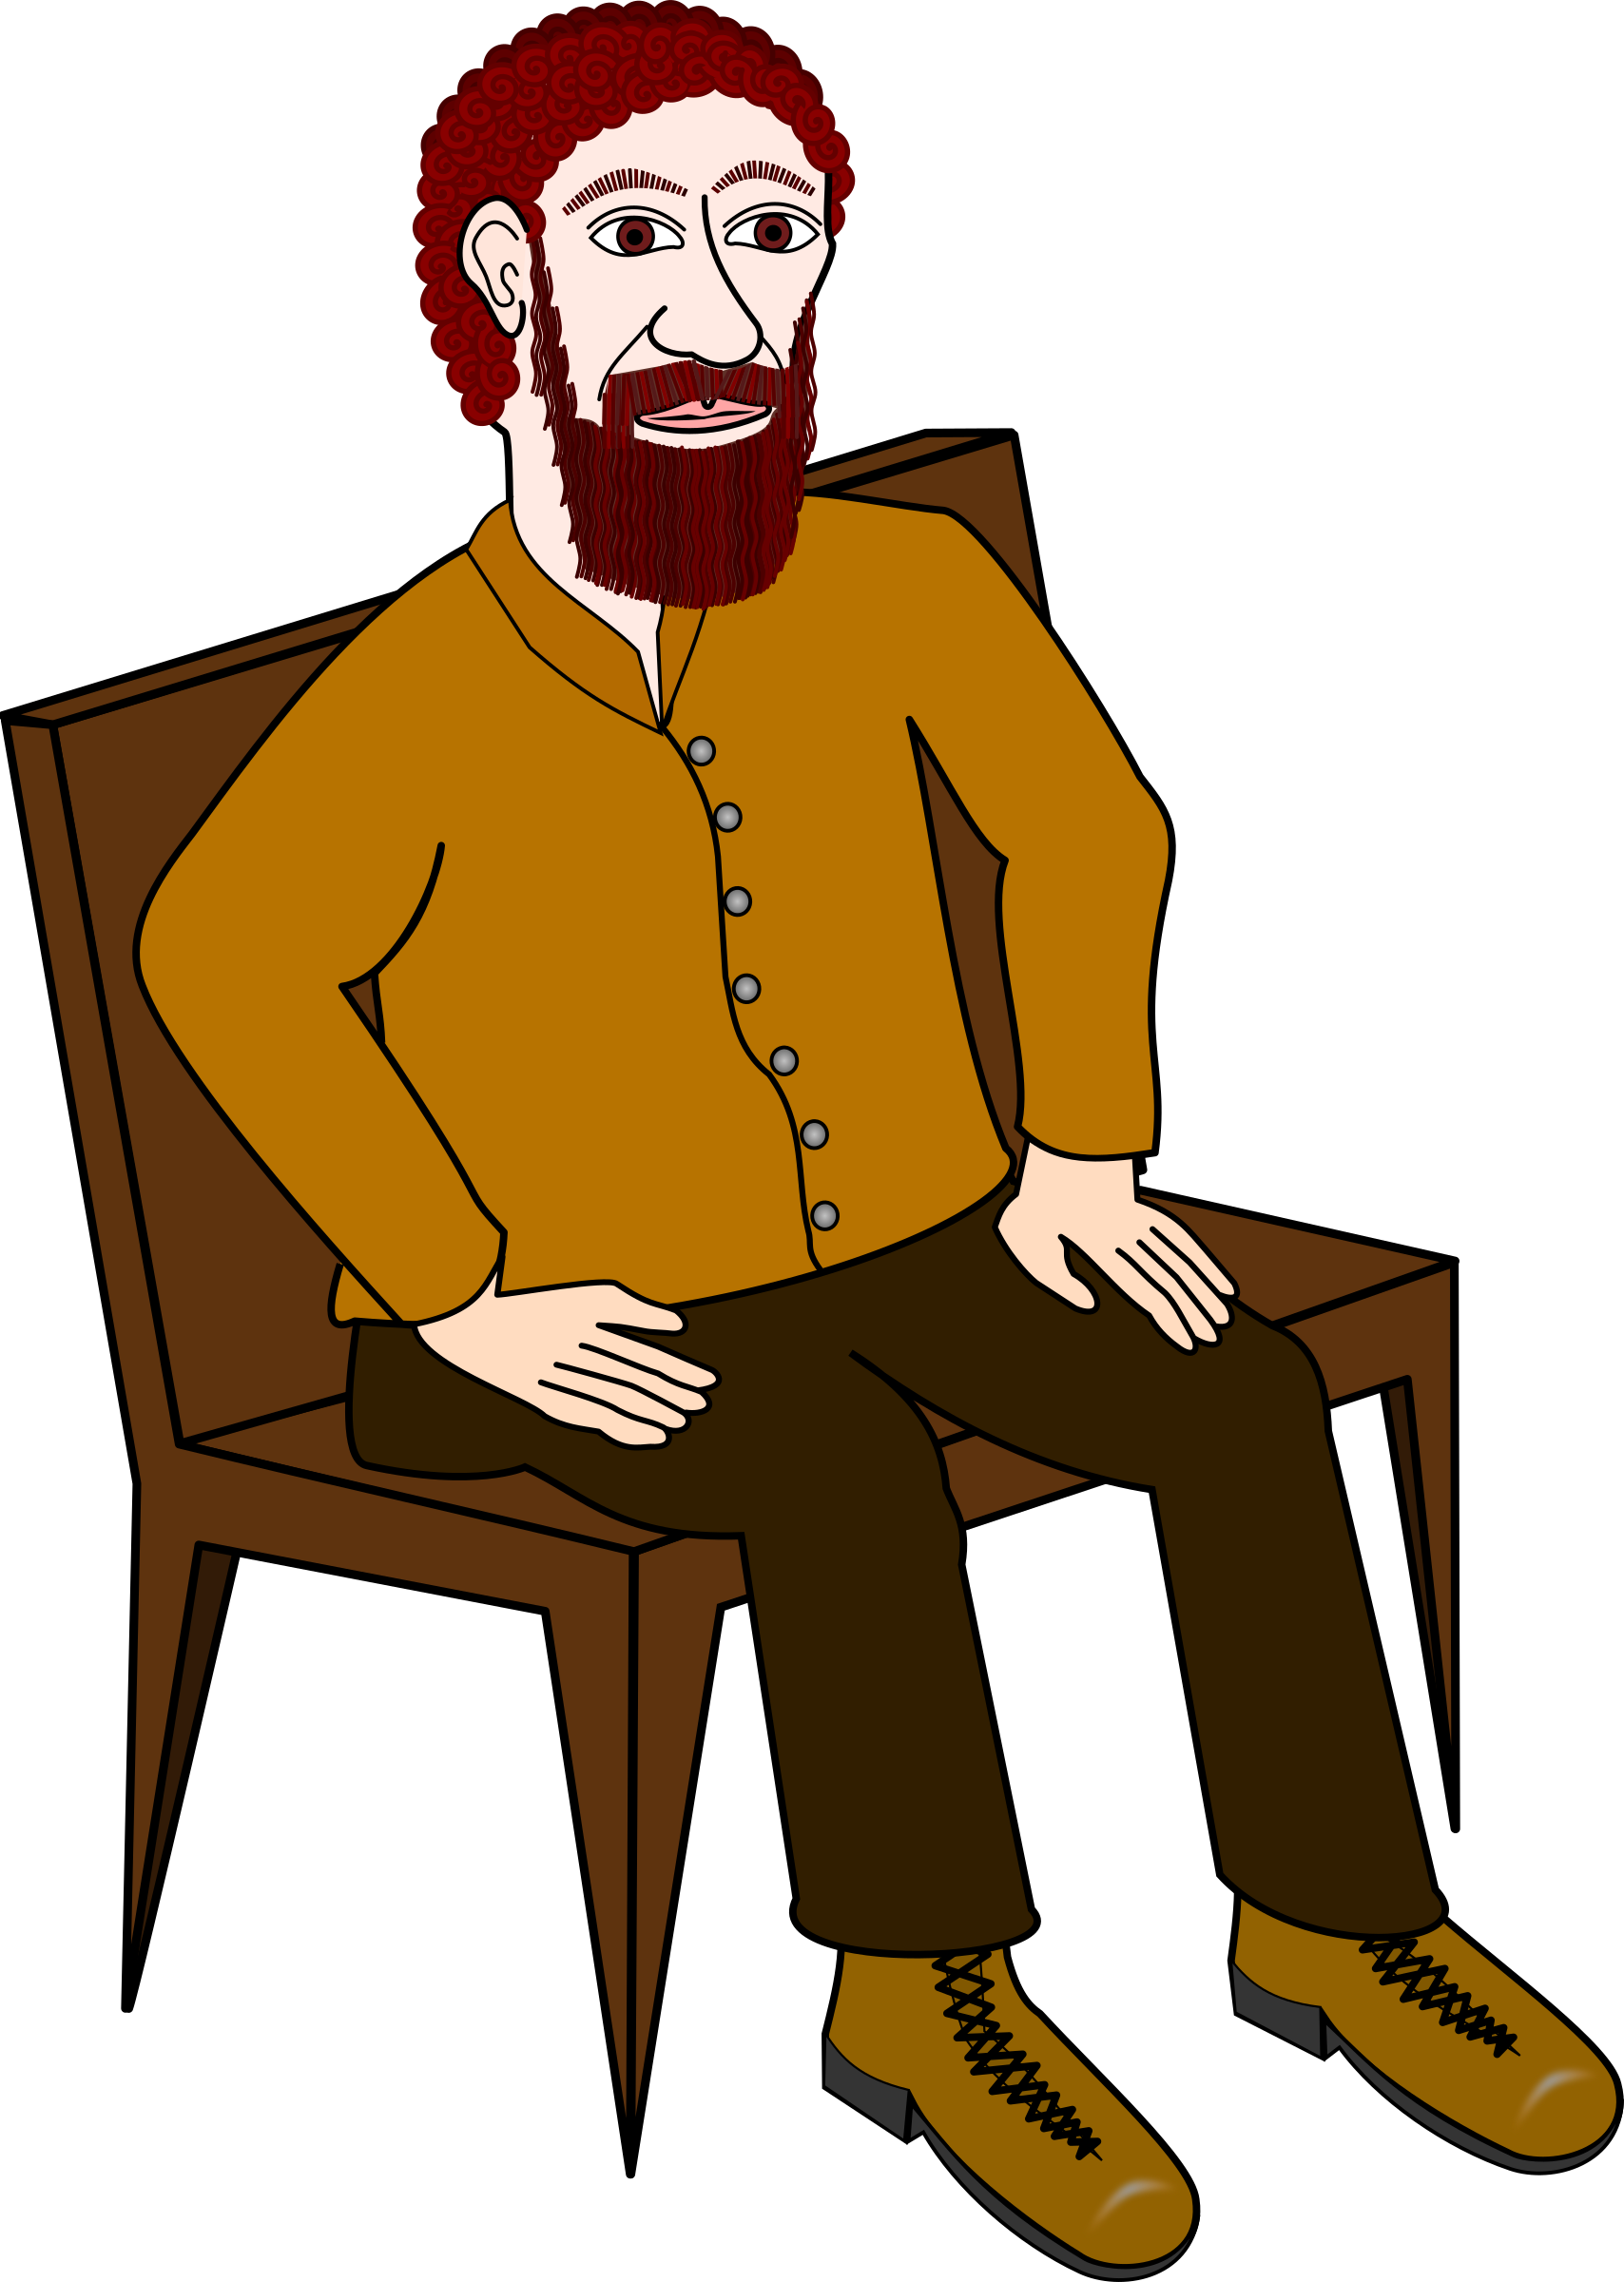 Number 1 clipart giant. Sitting big image png